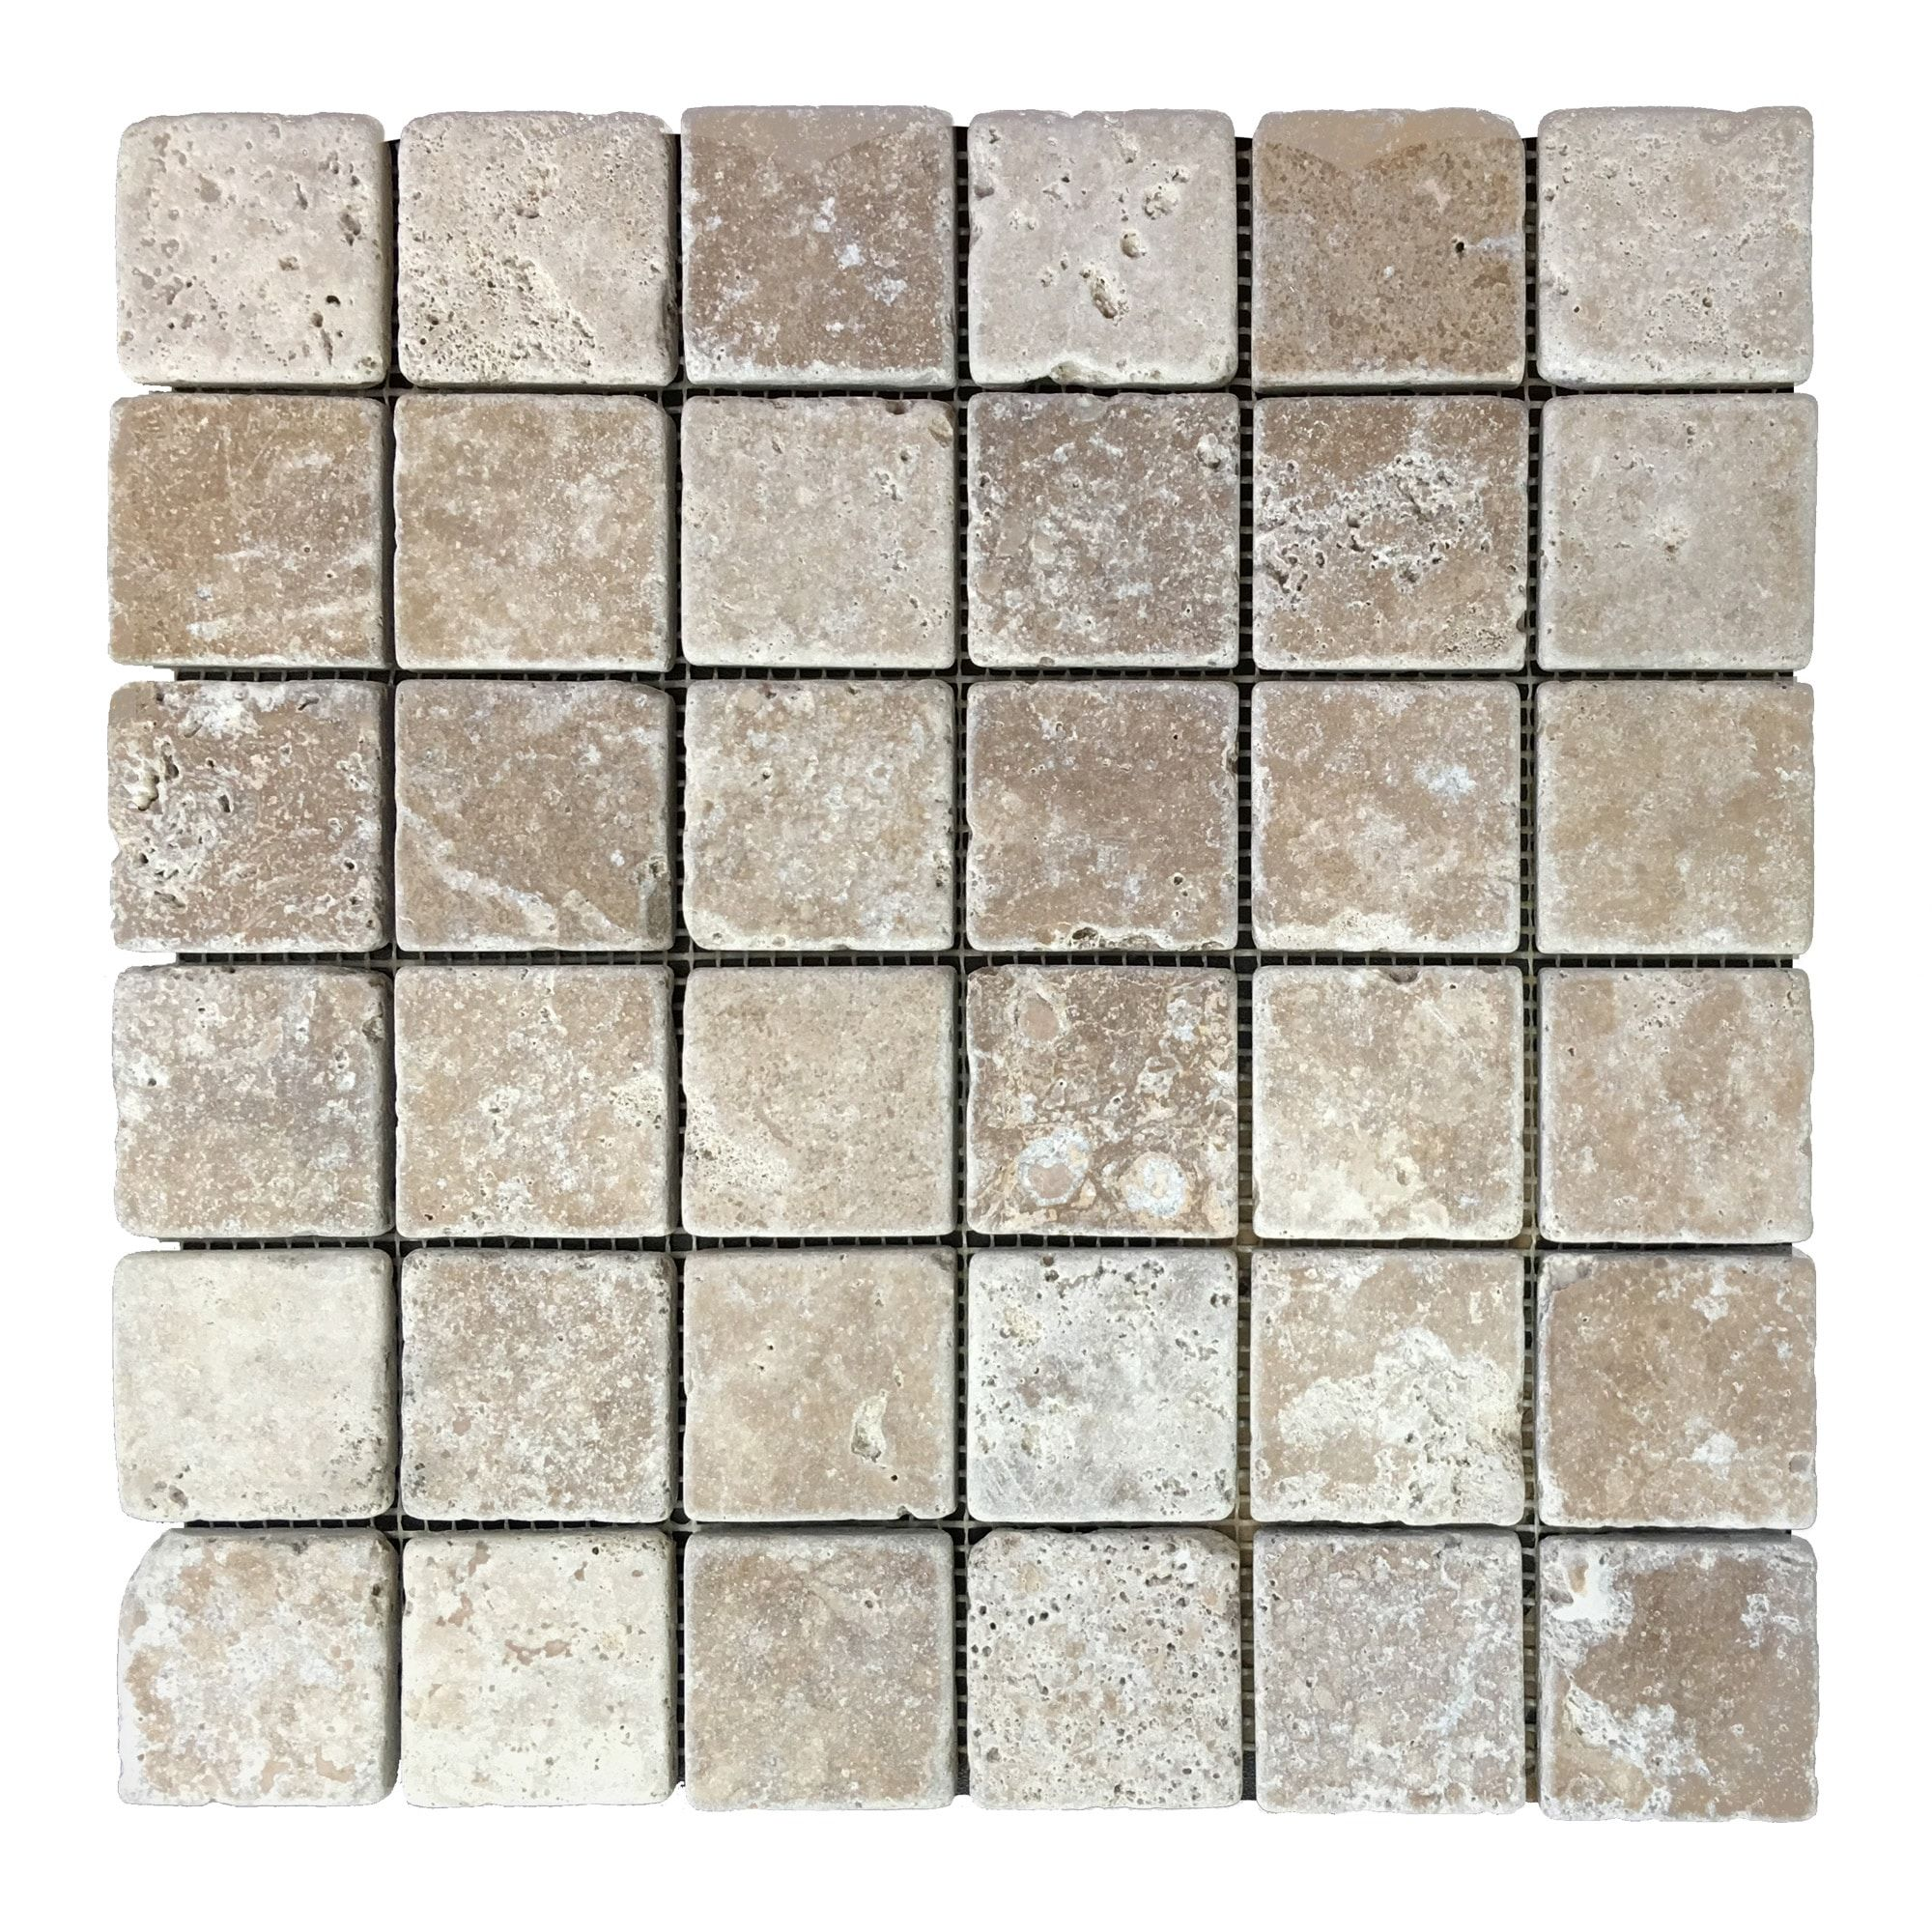 Travertine Noce Mosaic 2″ x 2″ Tiles